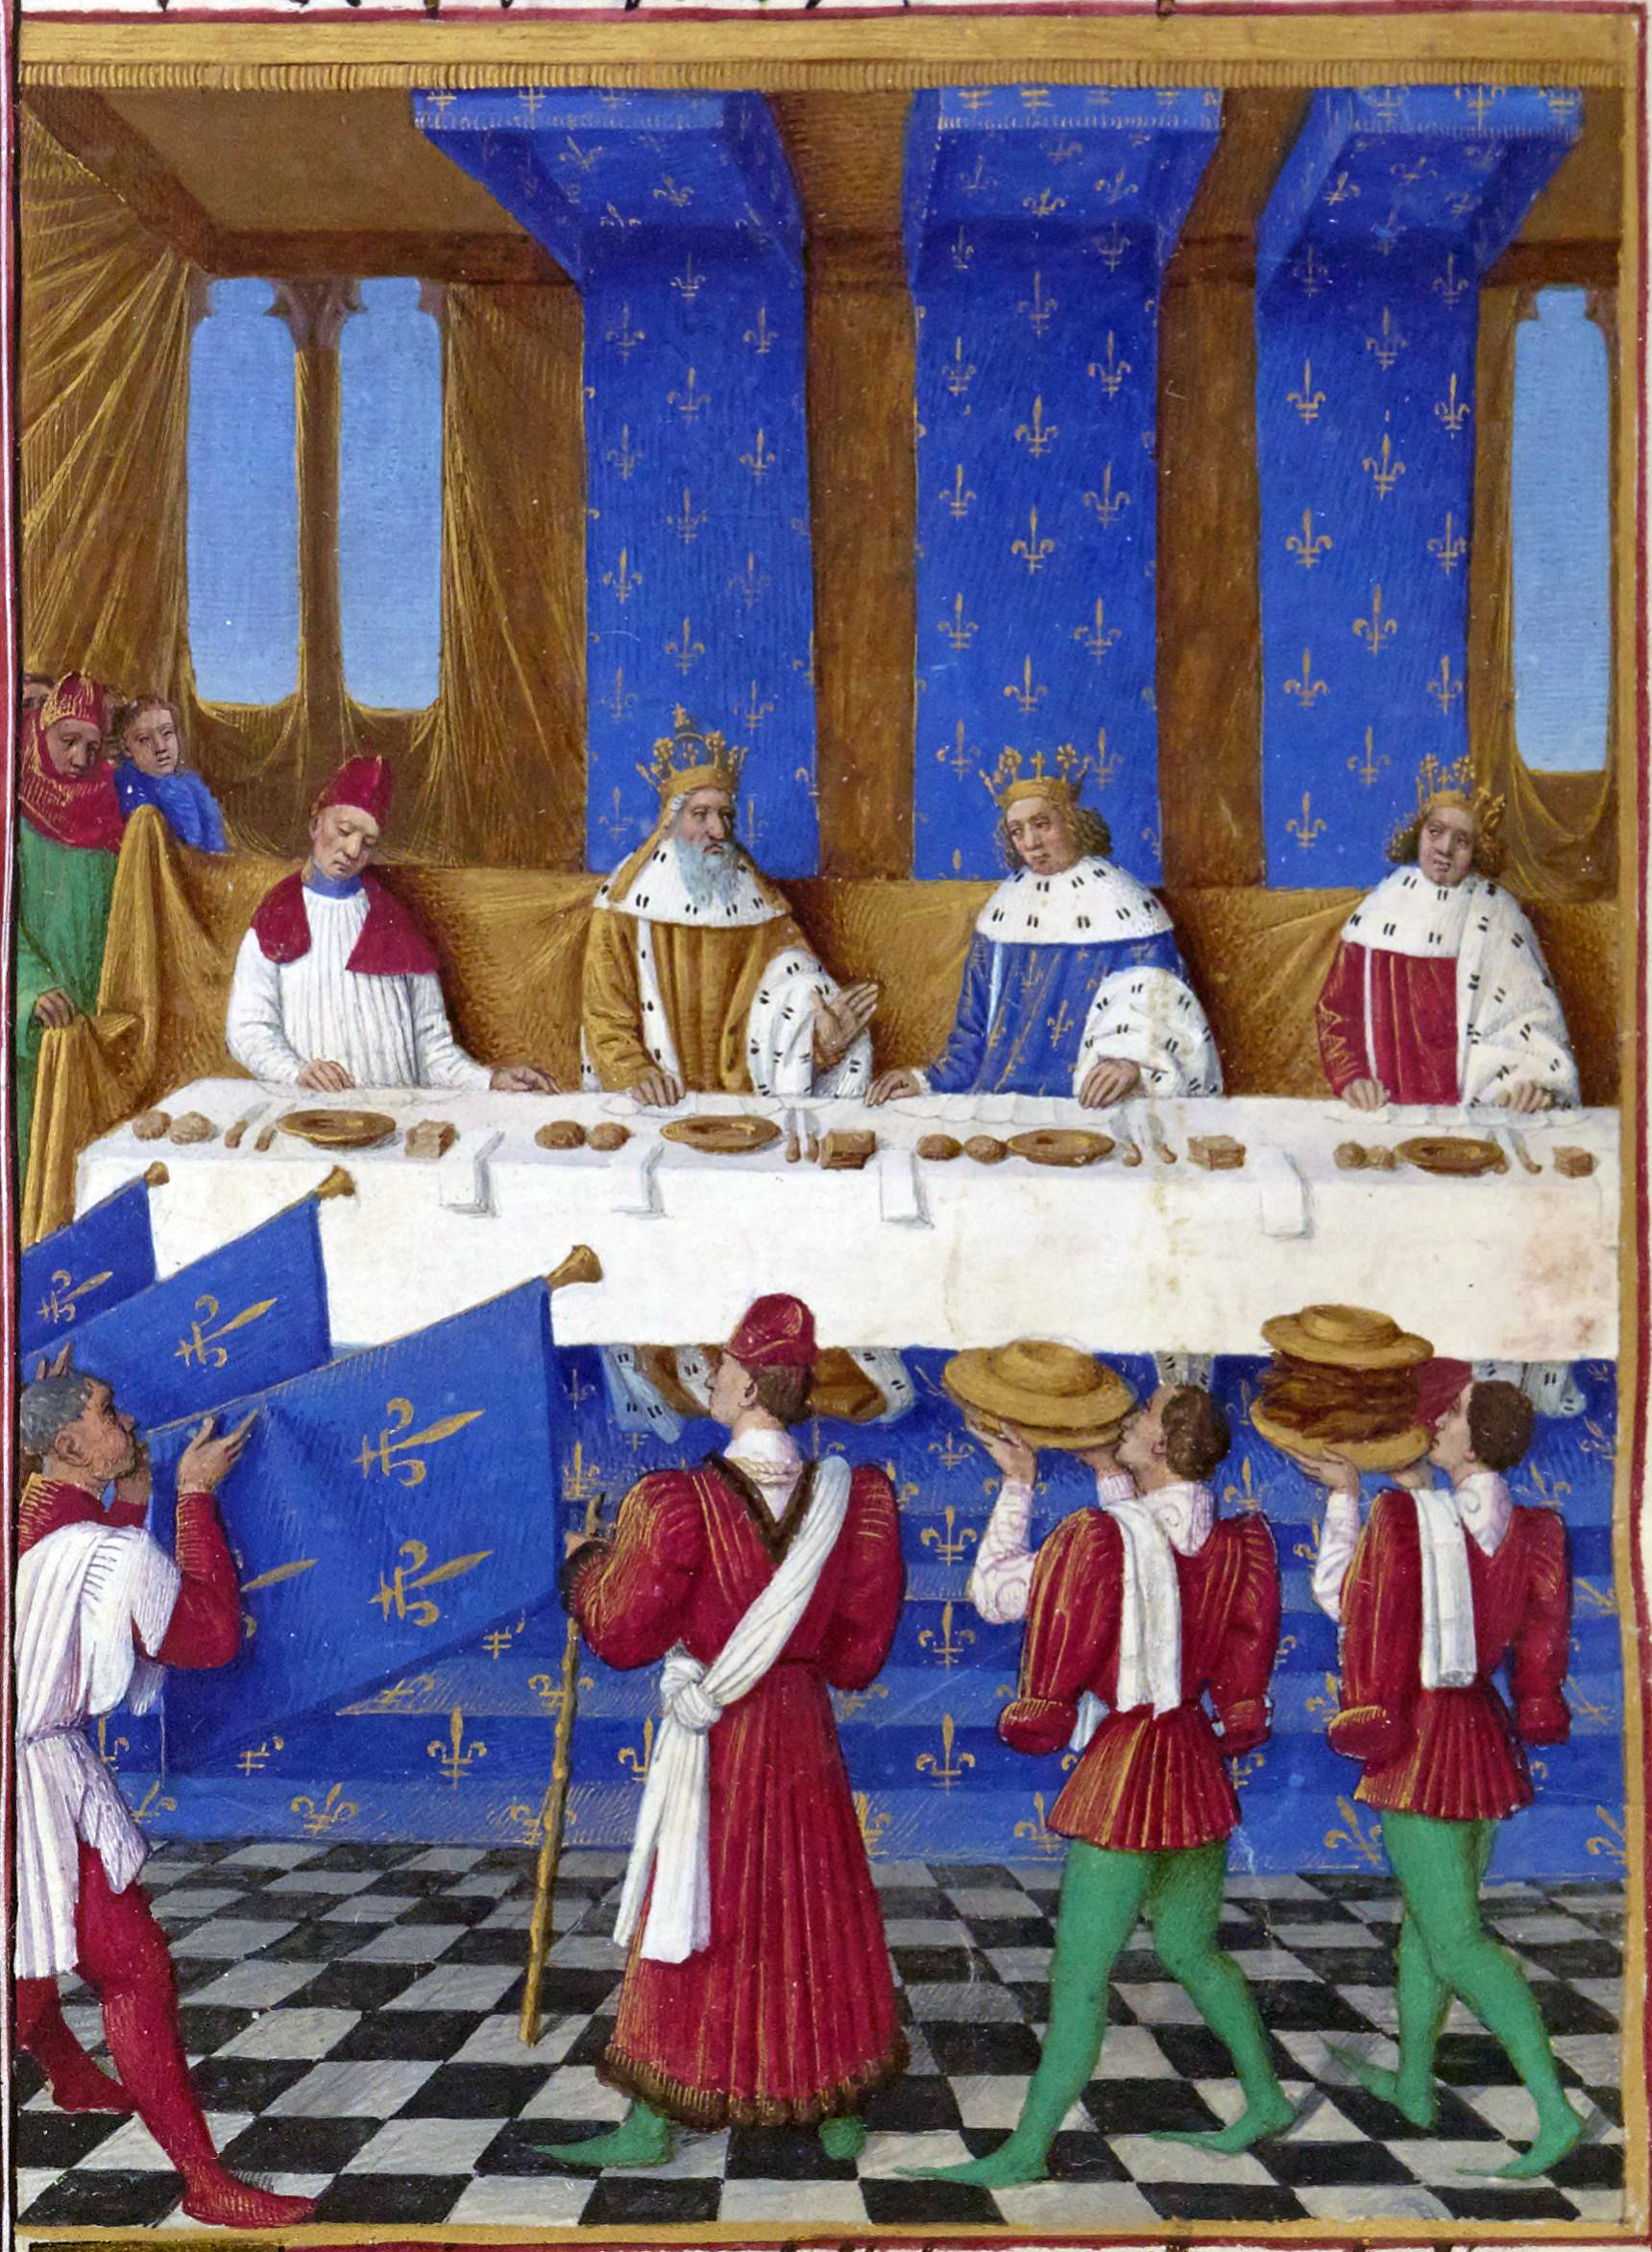 http://upload.wikimedia.org/wikipedia/commons/e/e6/Banquet_de_Charles_V_le_Sage.jpg